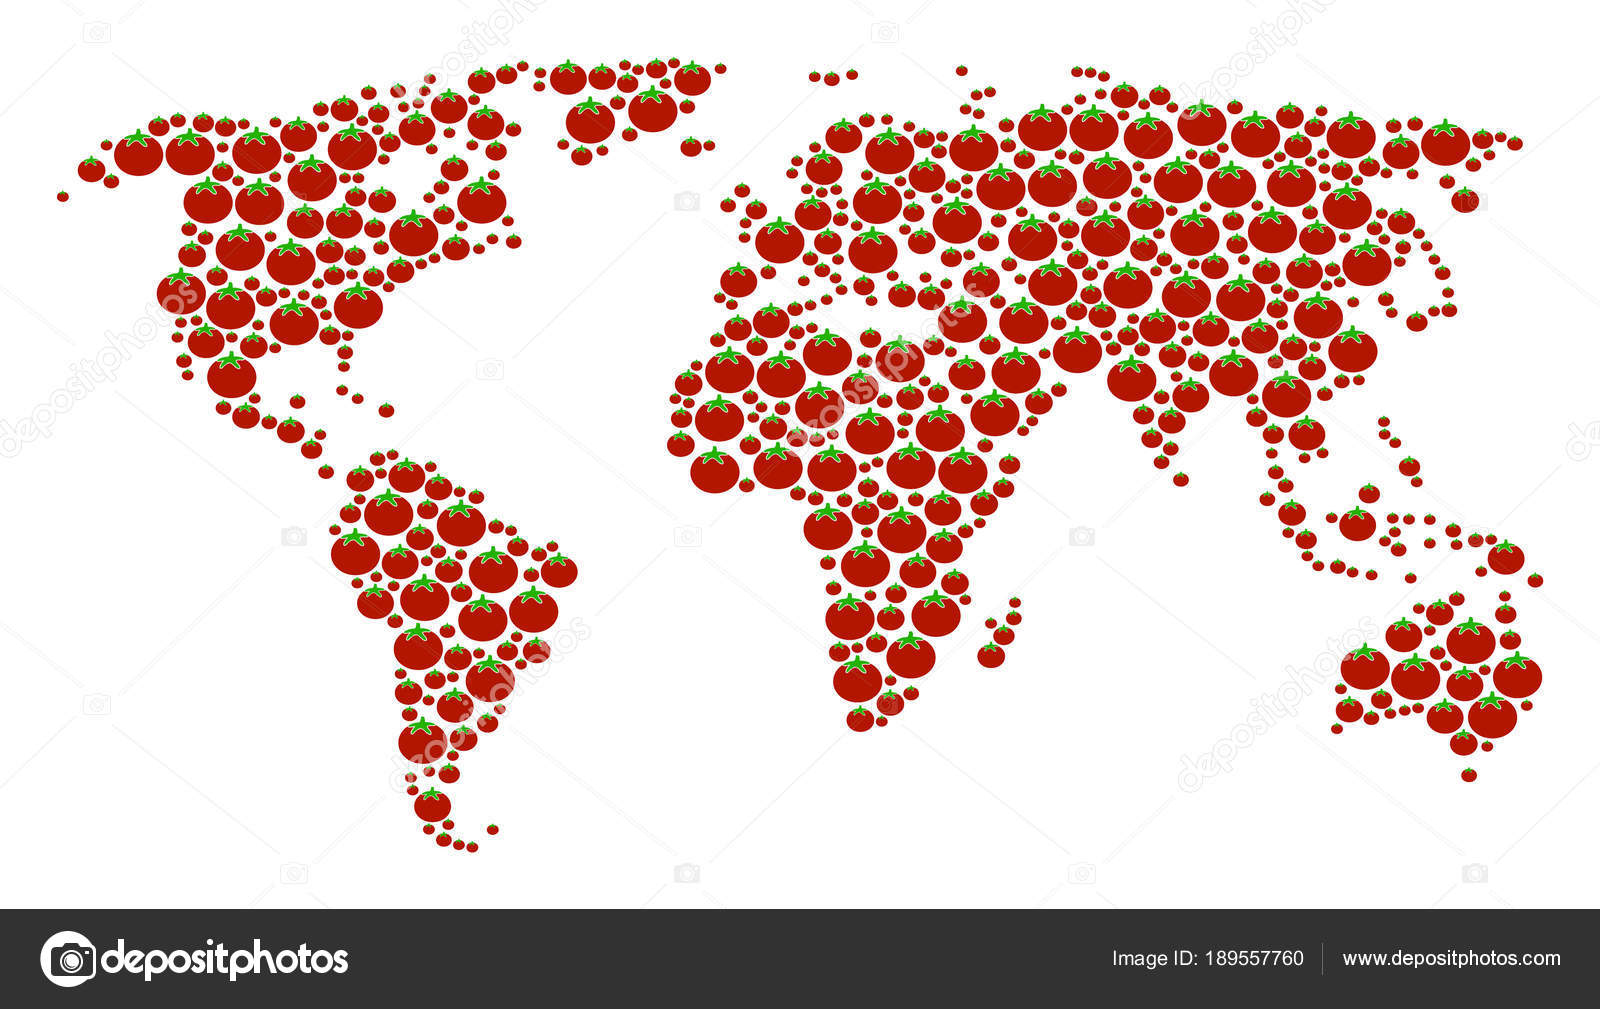 World map collage of tomato stock vector ahasoft 189557760 world map collage of tomato stock vector gumiabroncs Images